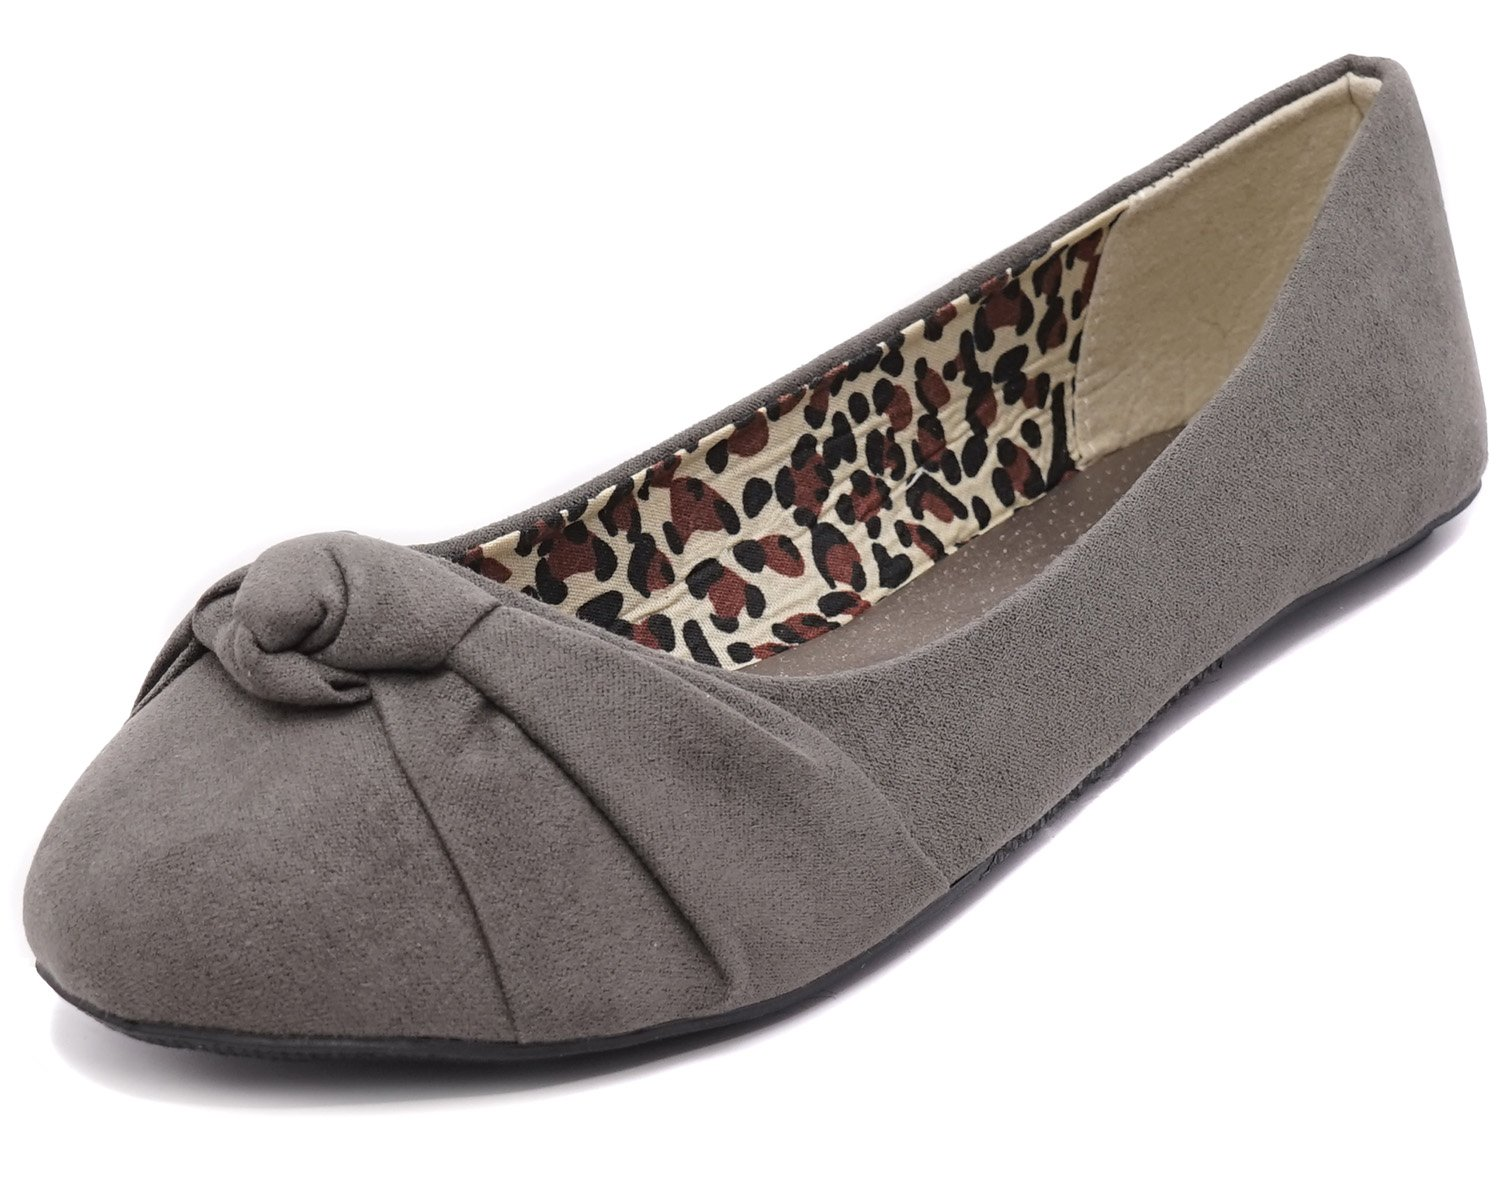 bc9eb1d9a437 Galleon - Charles Albert Women s Knotted Front Canvas Round Toe Ballet Flats  (6